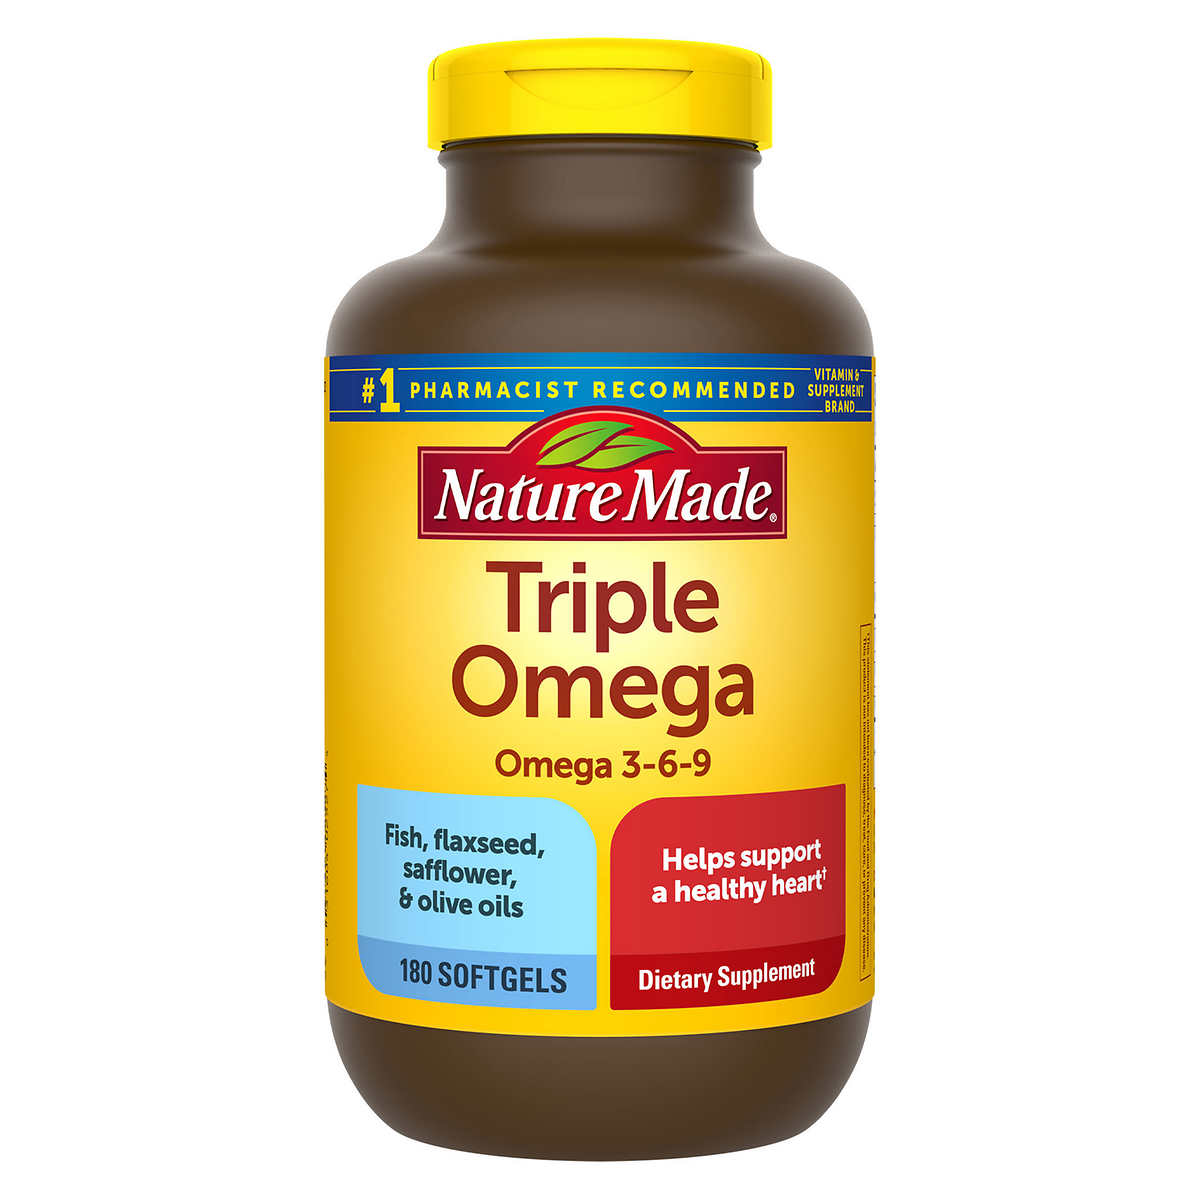 Nature Made Triple Omega 180 Softgels